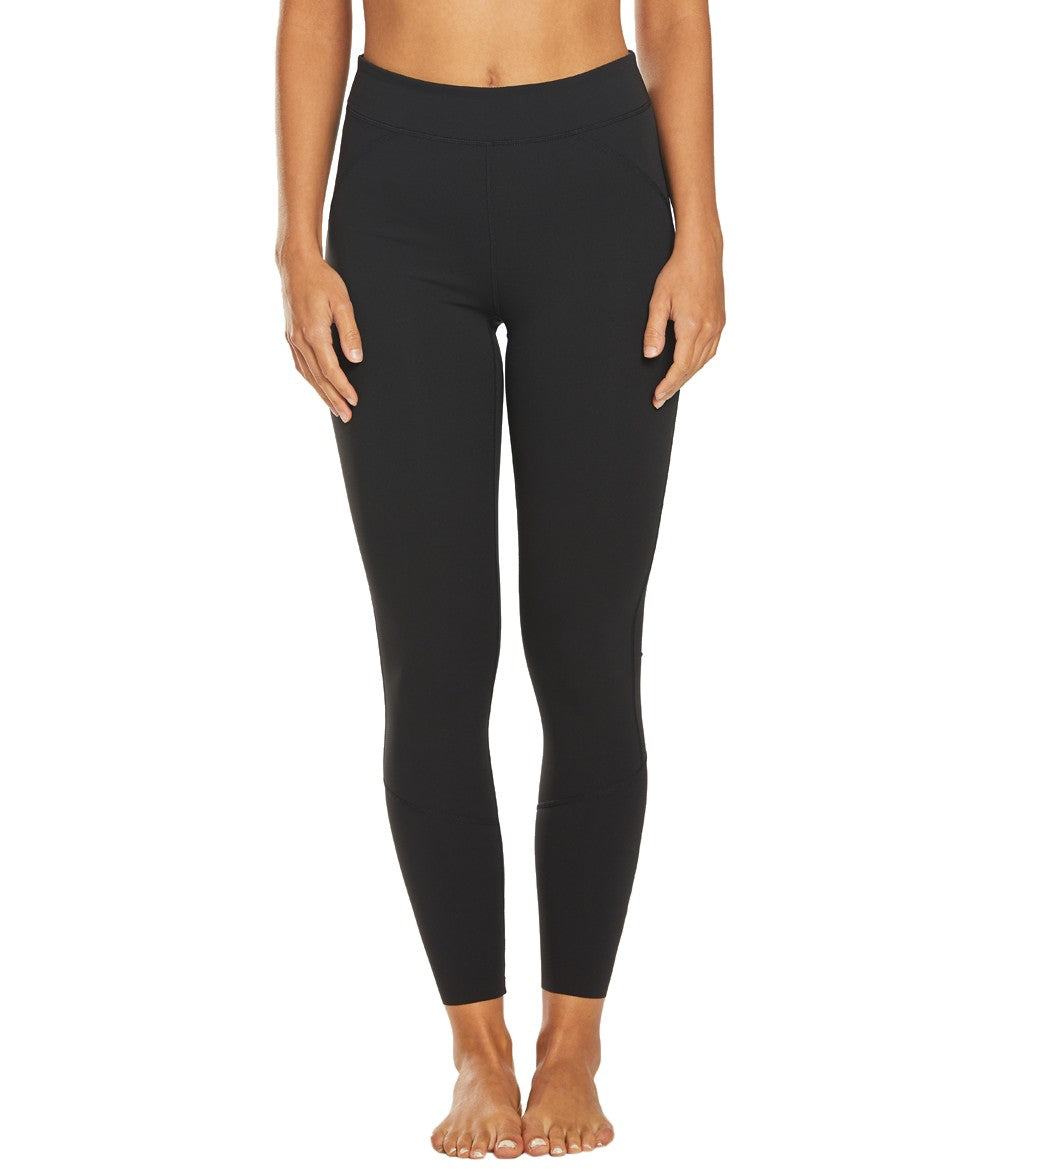 Free People Over the Moon Yoga Leggings - Black Spandex